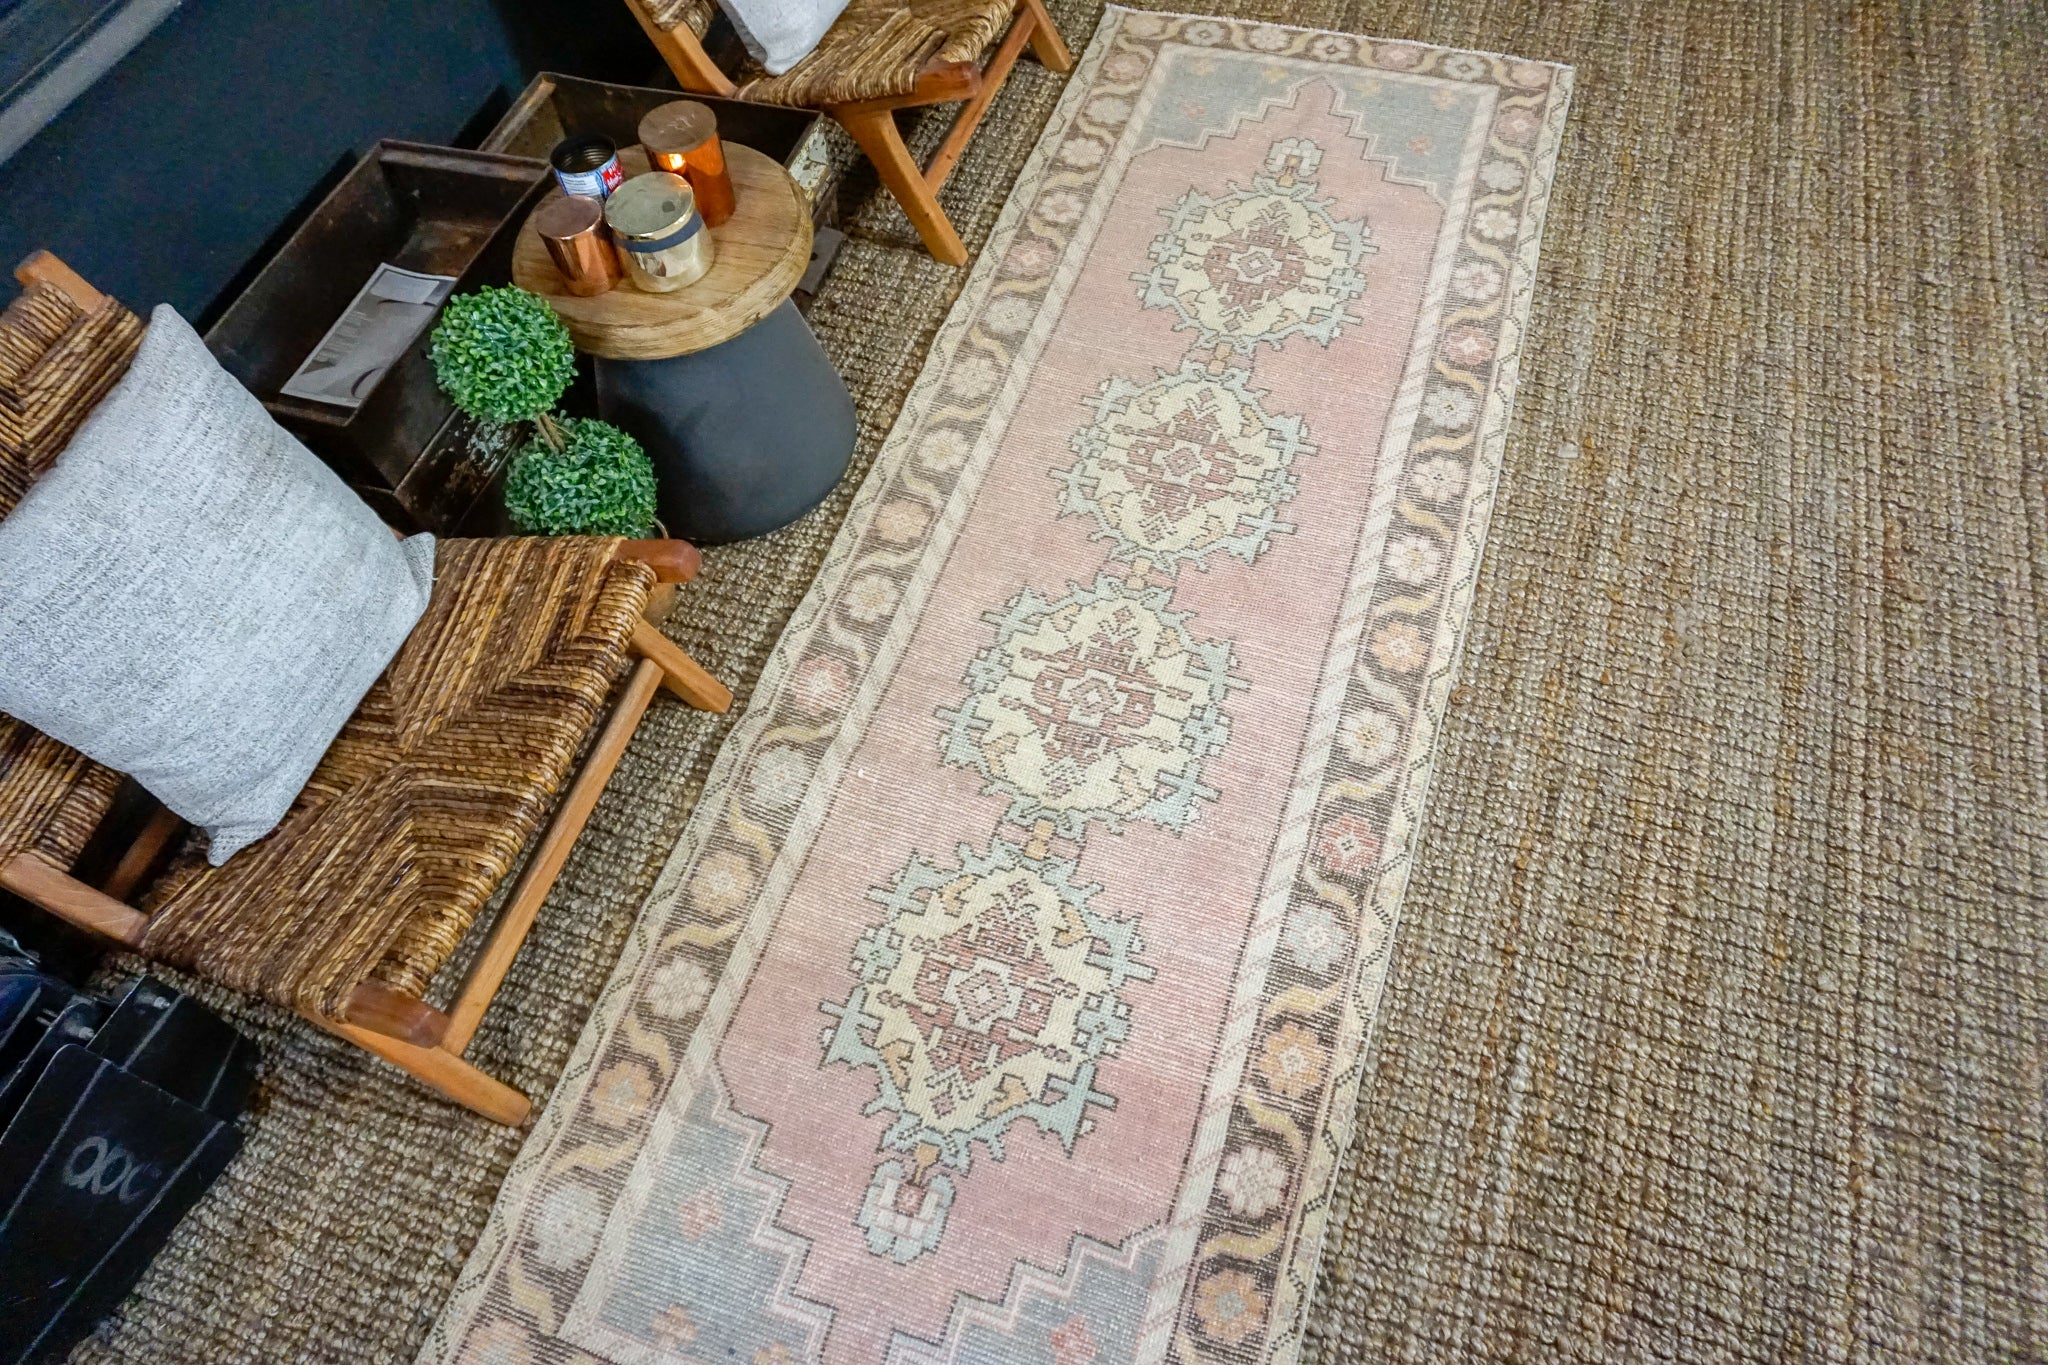 Sold 1/21*3' x 9' Vintage Turkish Runner Muted Pink, Vanilla and Blue